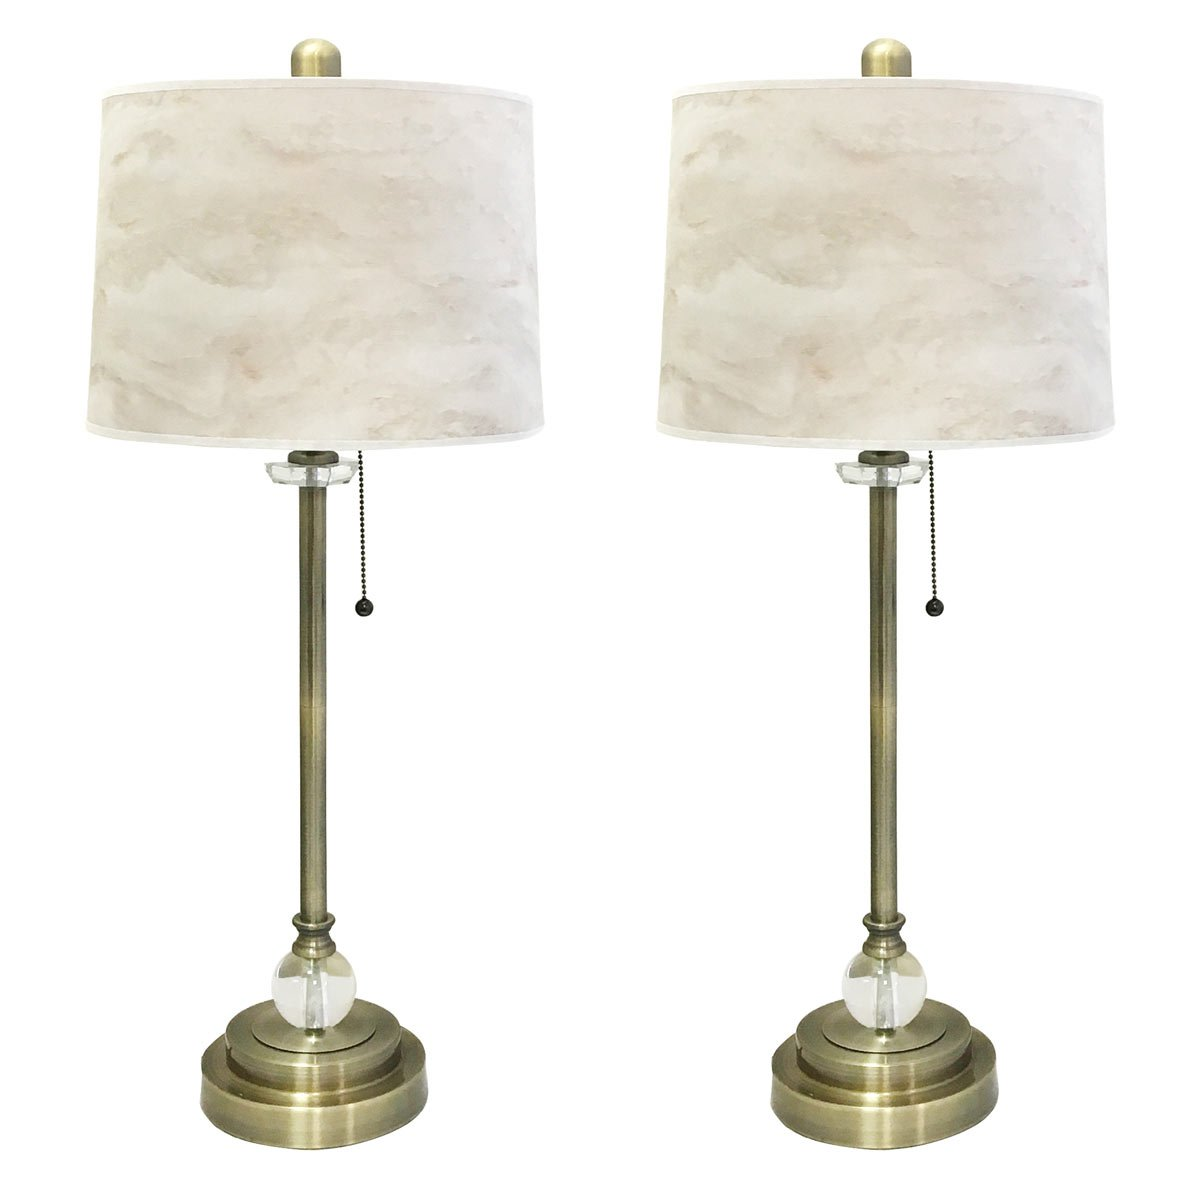 Royal Designs 28'' Crystal and Antique Brass Buffet Lamp with White Marble Texture Hardback Lamp Shade, Set of 2 by Royal Designs, Inc